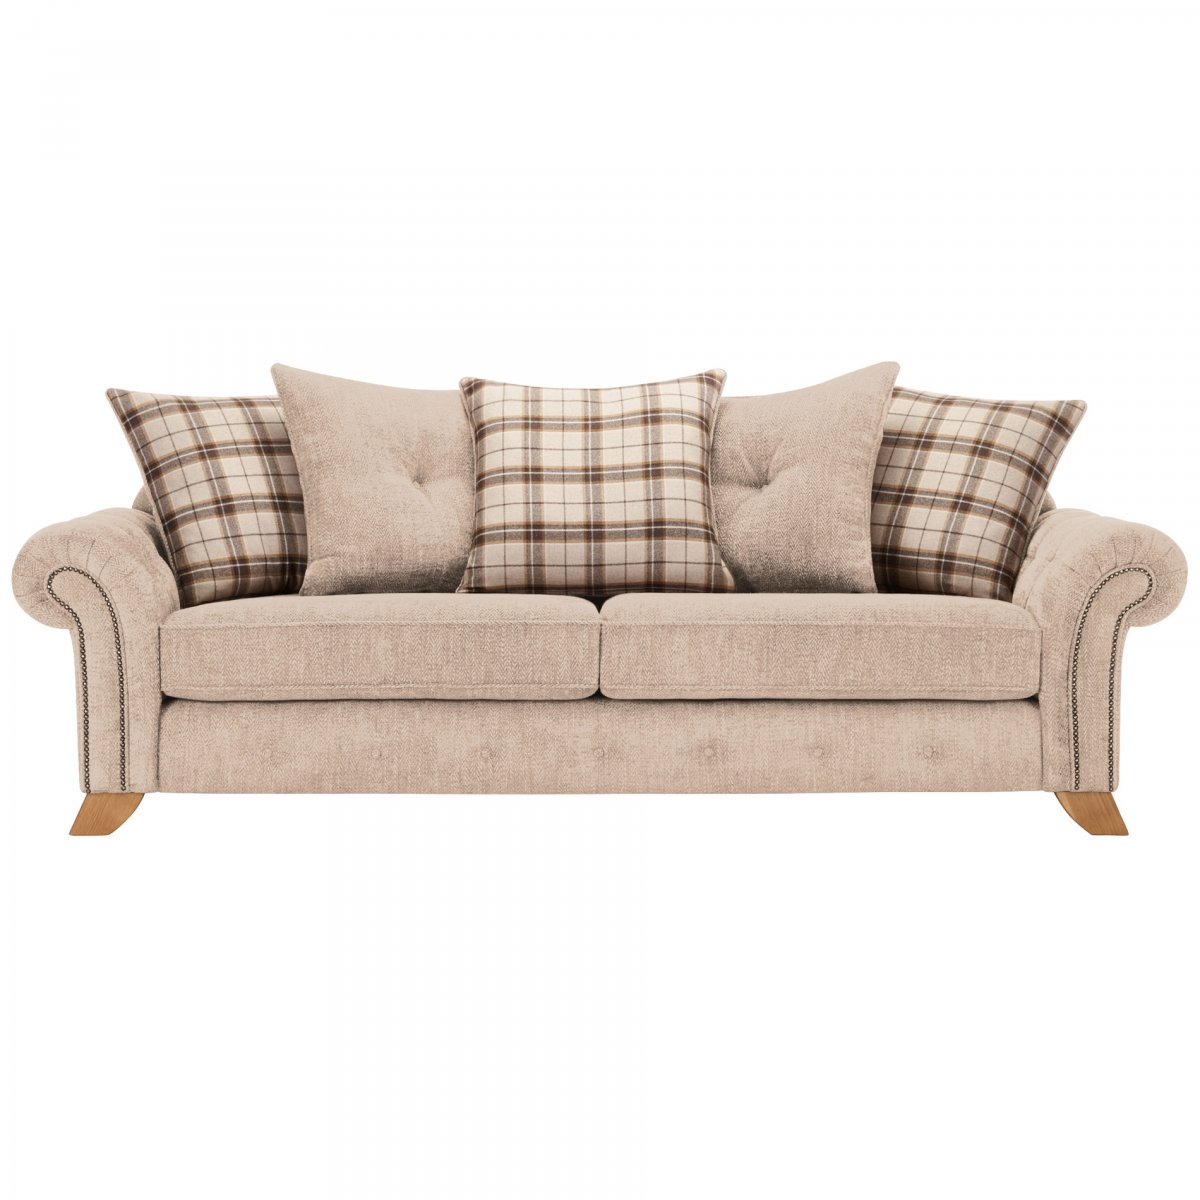 Montana 4 seater pillow back sofa in beige tartan cushions for Perez 4 seater pillow back sectional sofa